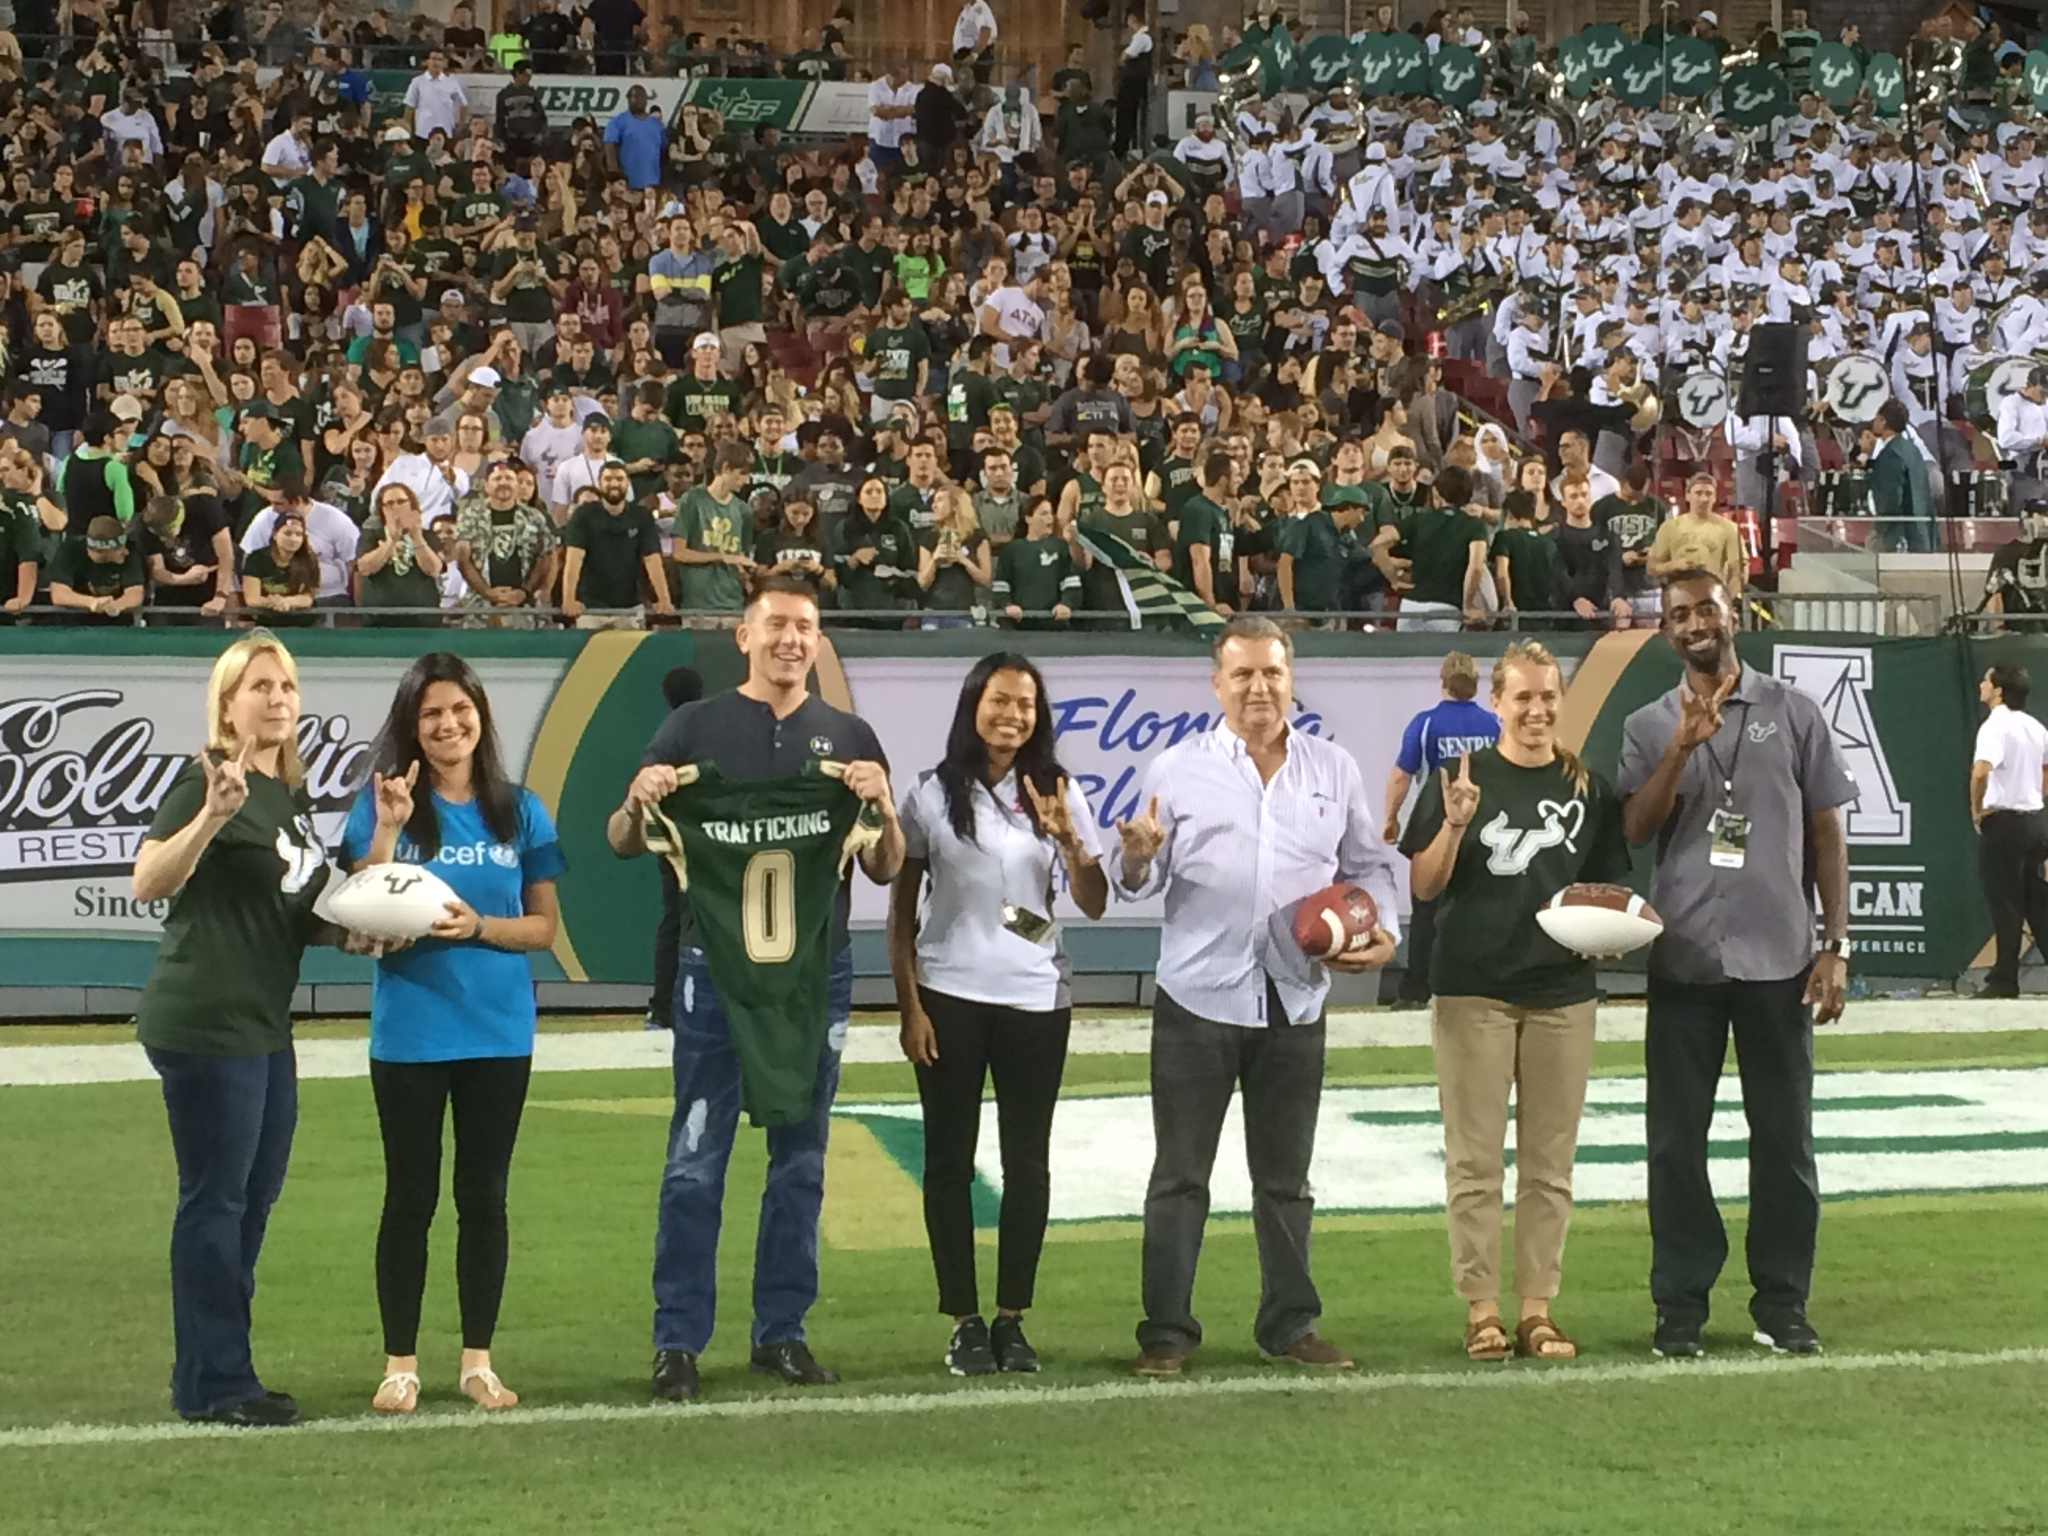 The U.S. Fund for UNICEF, the Florida Dream Center, and the NCAS are honored on the Football field during halftime.